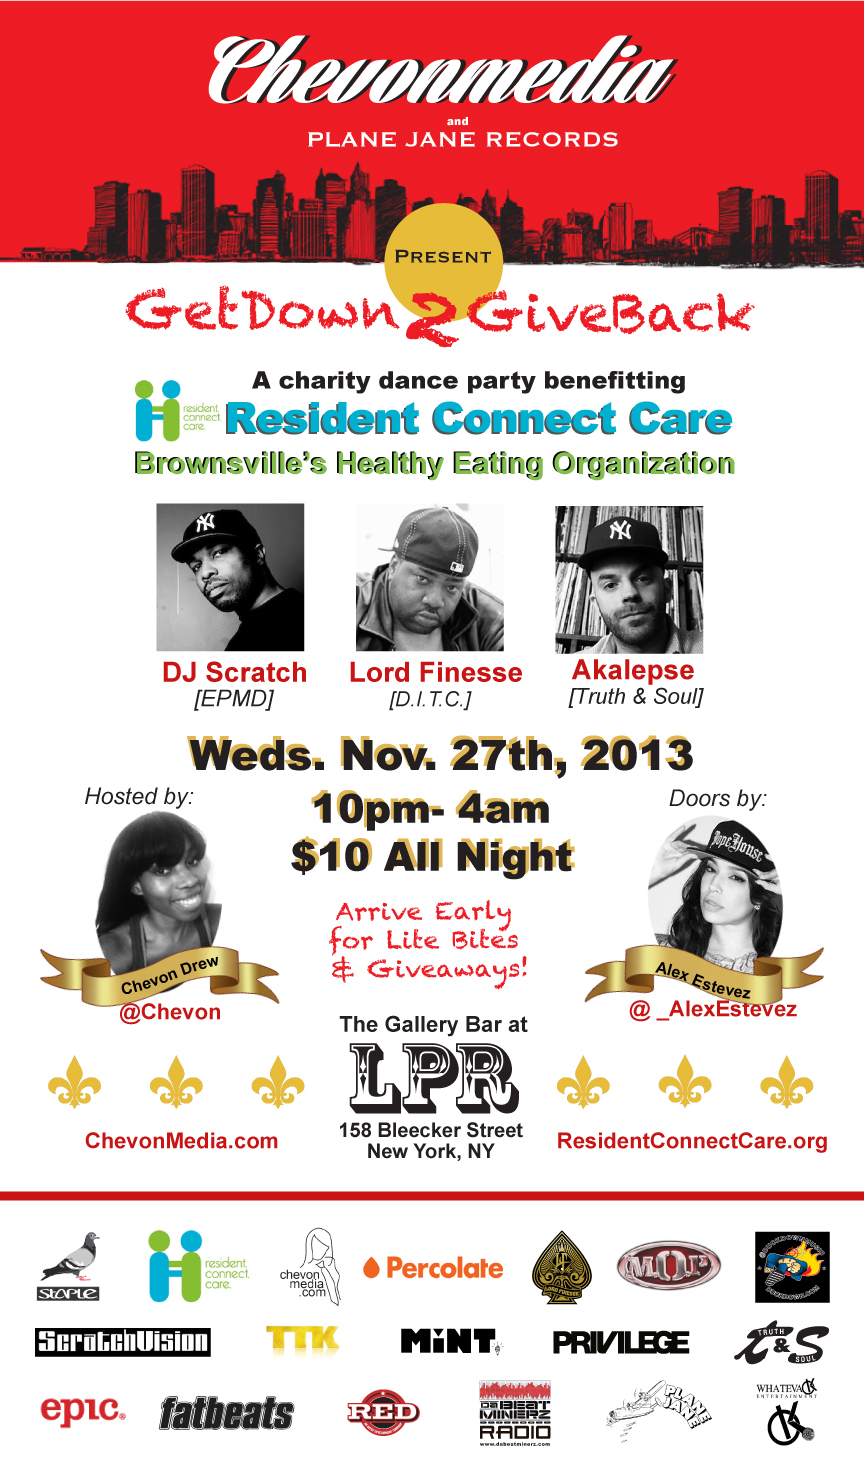 GetDown2GiveBack-Nov27-Res-Connect-Care-1121